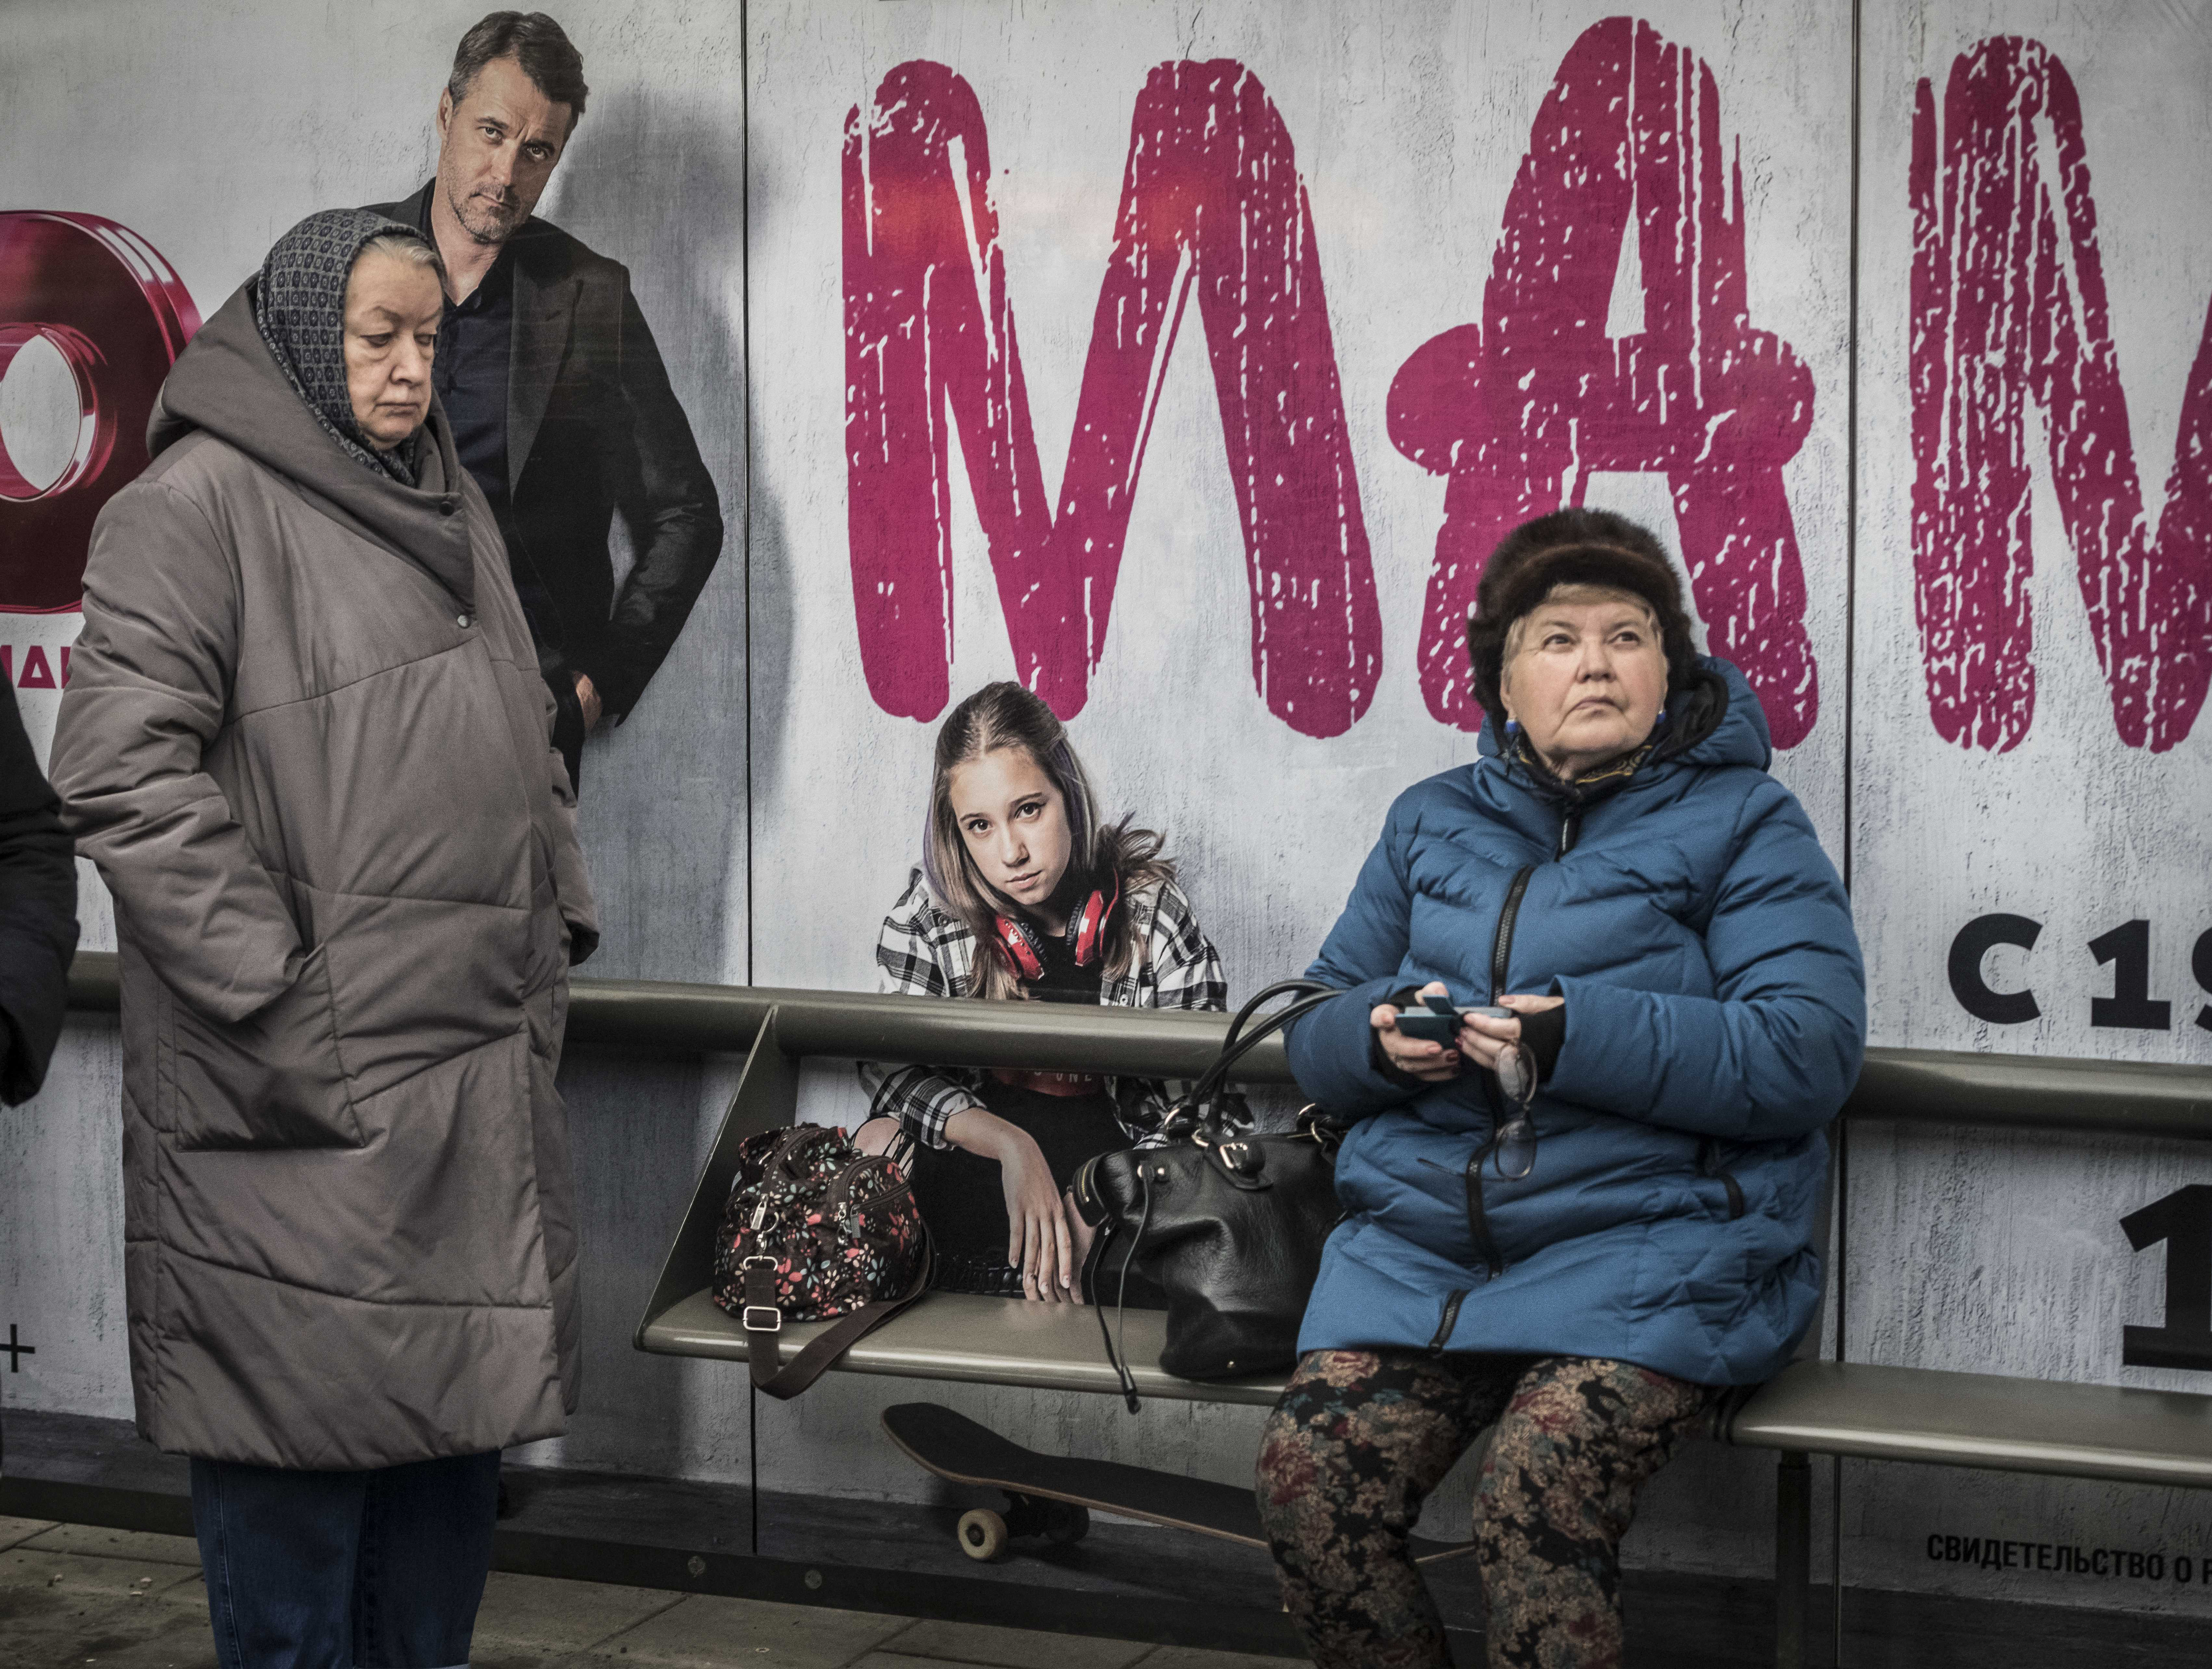 FILE - Two elderly women wait for their ride at a bus stop in Moscow, Nov. 1, 2018.